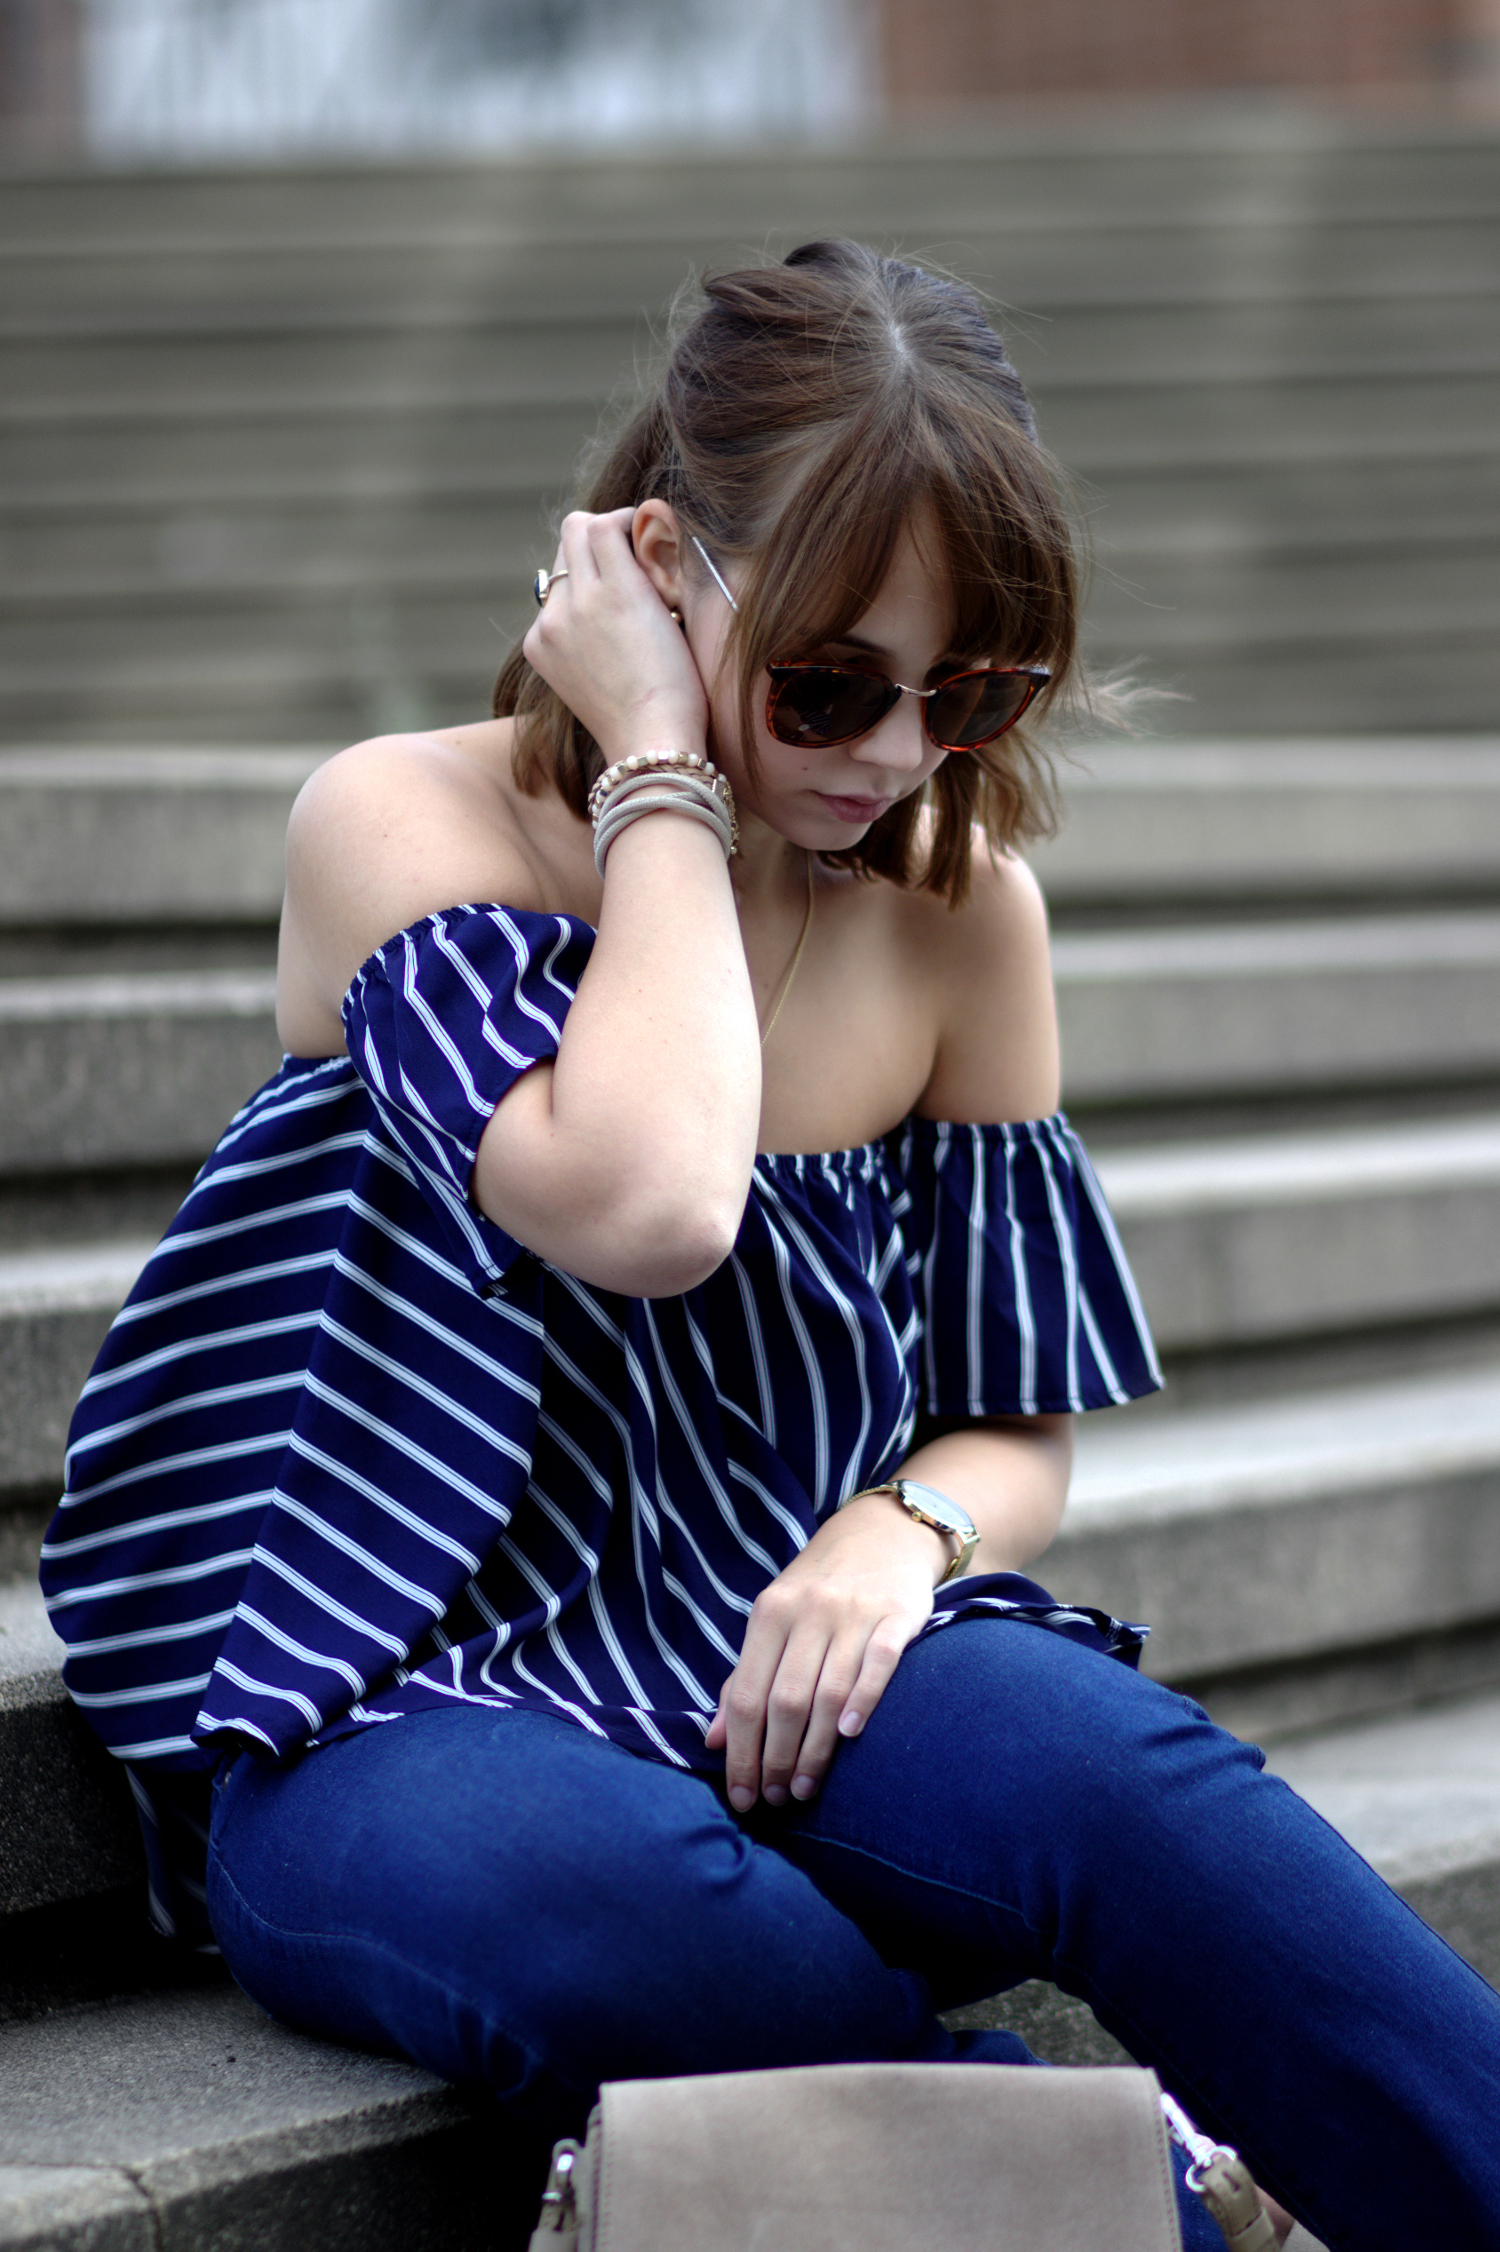 Bezaubernde Nana, bezauberndenana.de Fashionblog, Sommer Outfit mit Flared Jeans, gestreifte Off Shoulder Bluse, Beige Lace Up Pumps, Mango Tasche, Chloe Faye Lookalike